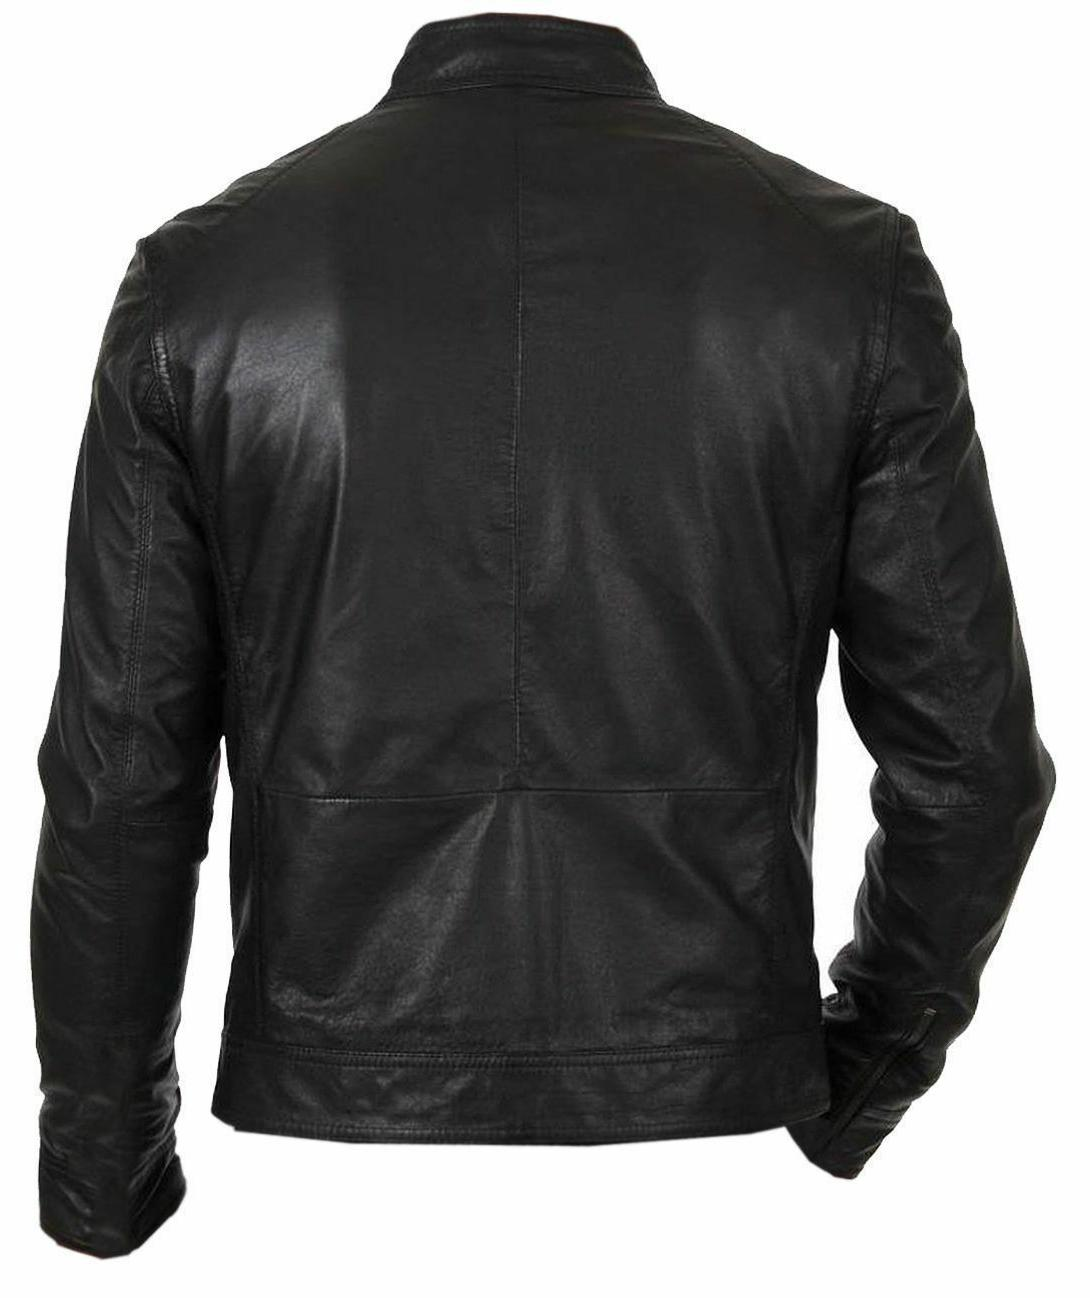 NEW VINTAGE BLACK GENUINE JACKET SLIM FIT